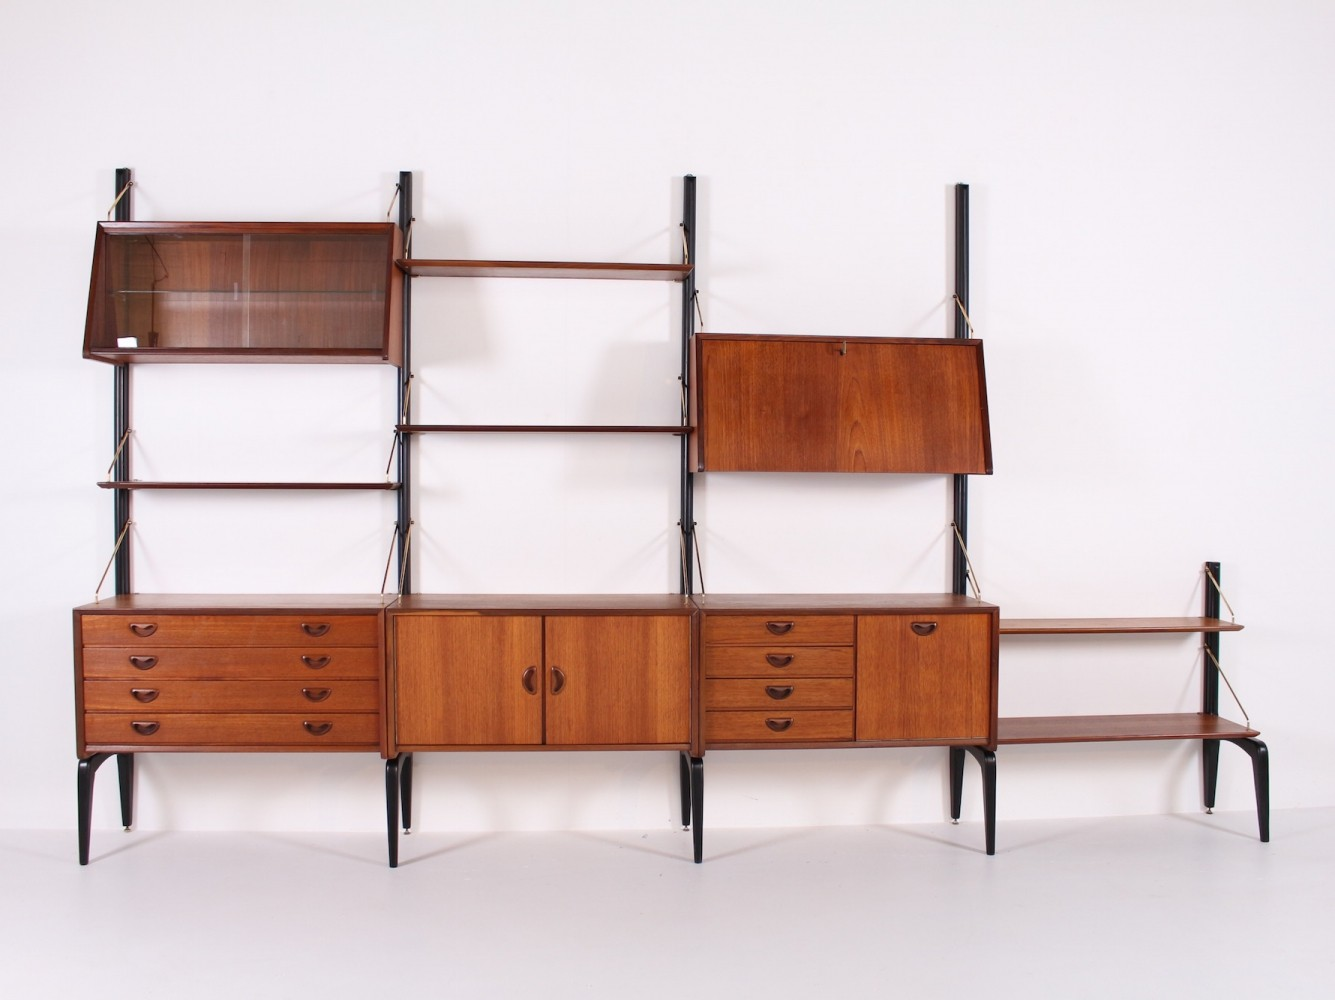 Wébé wall unit by Louis Van Teeffelen